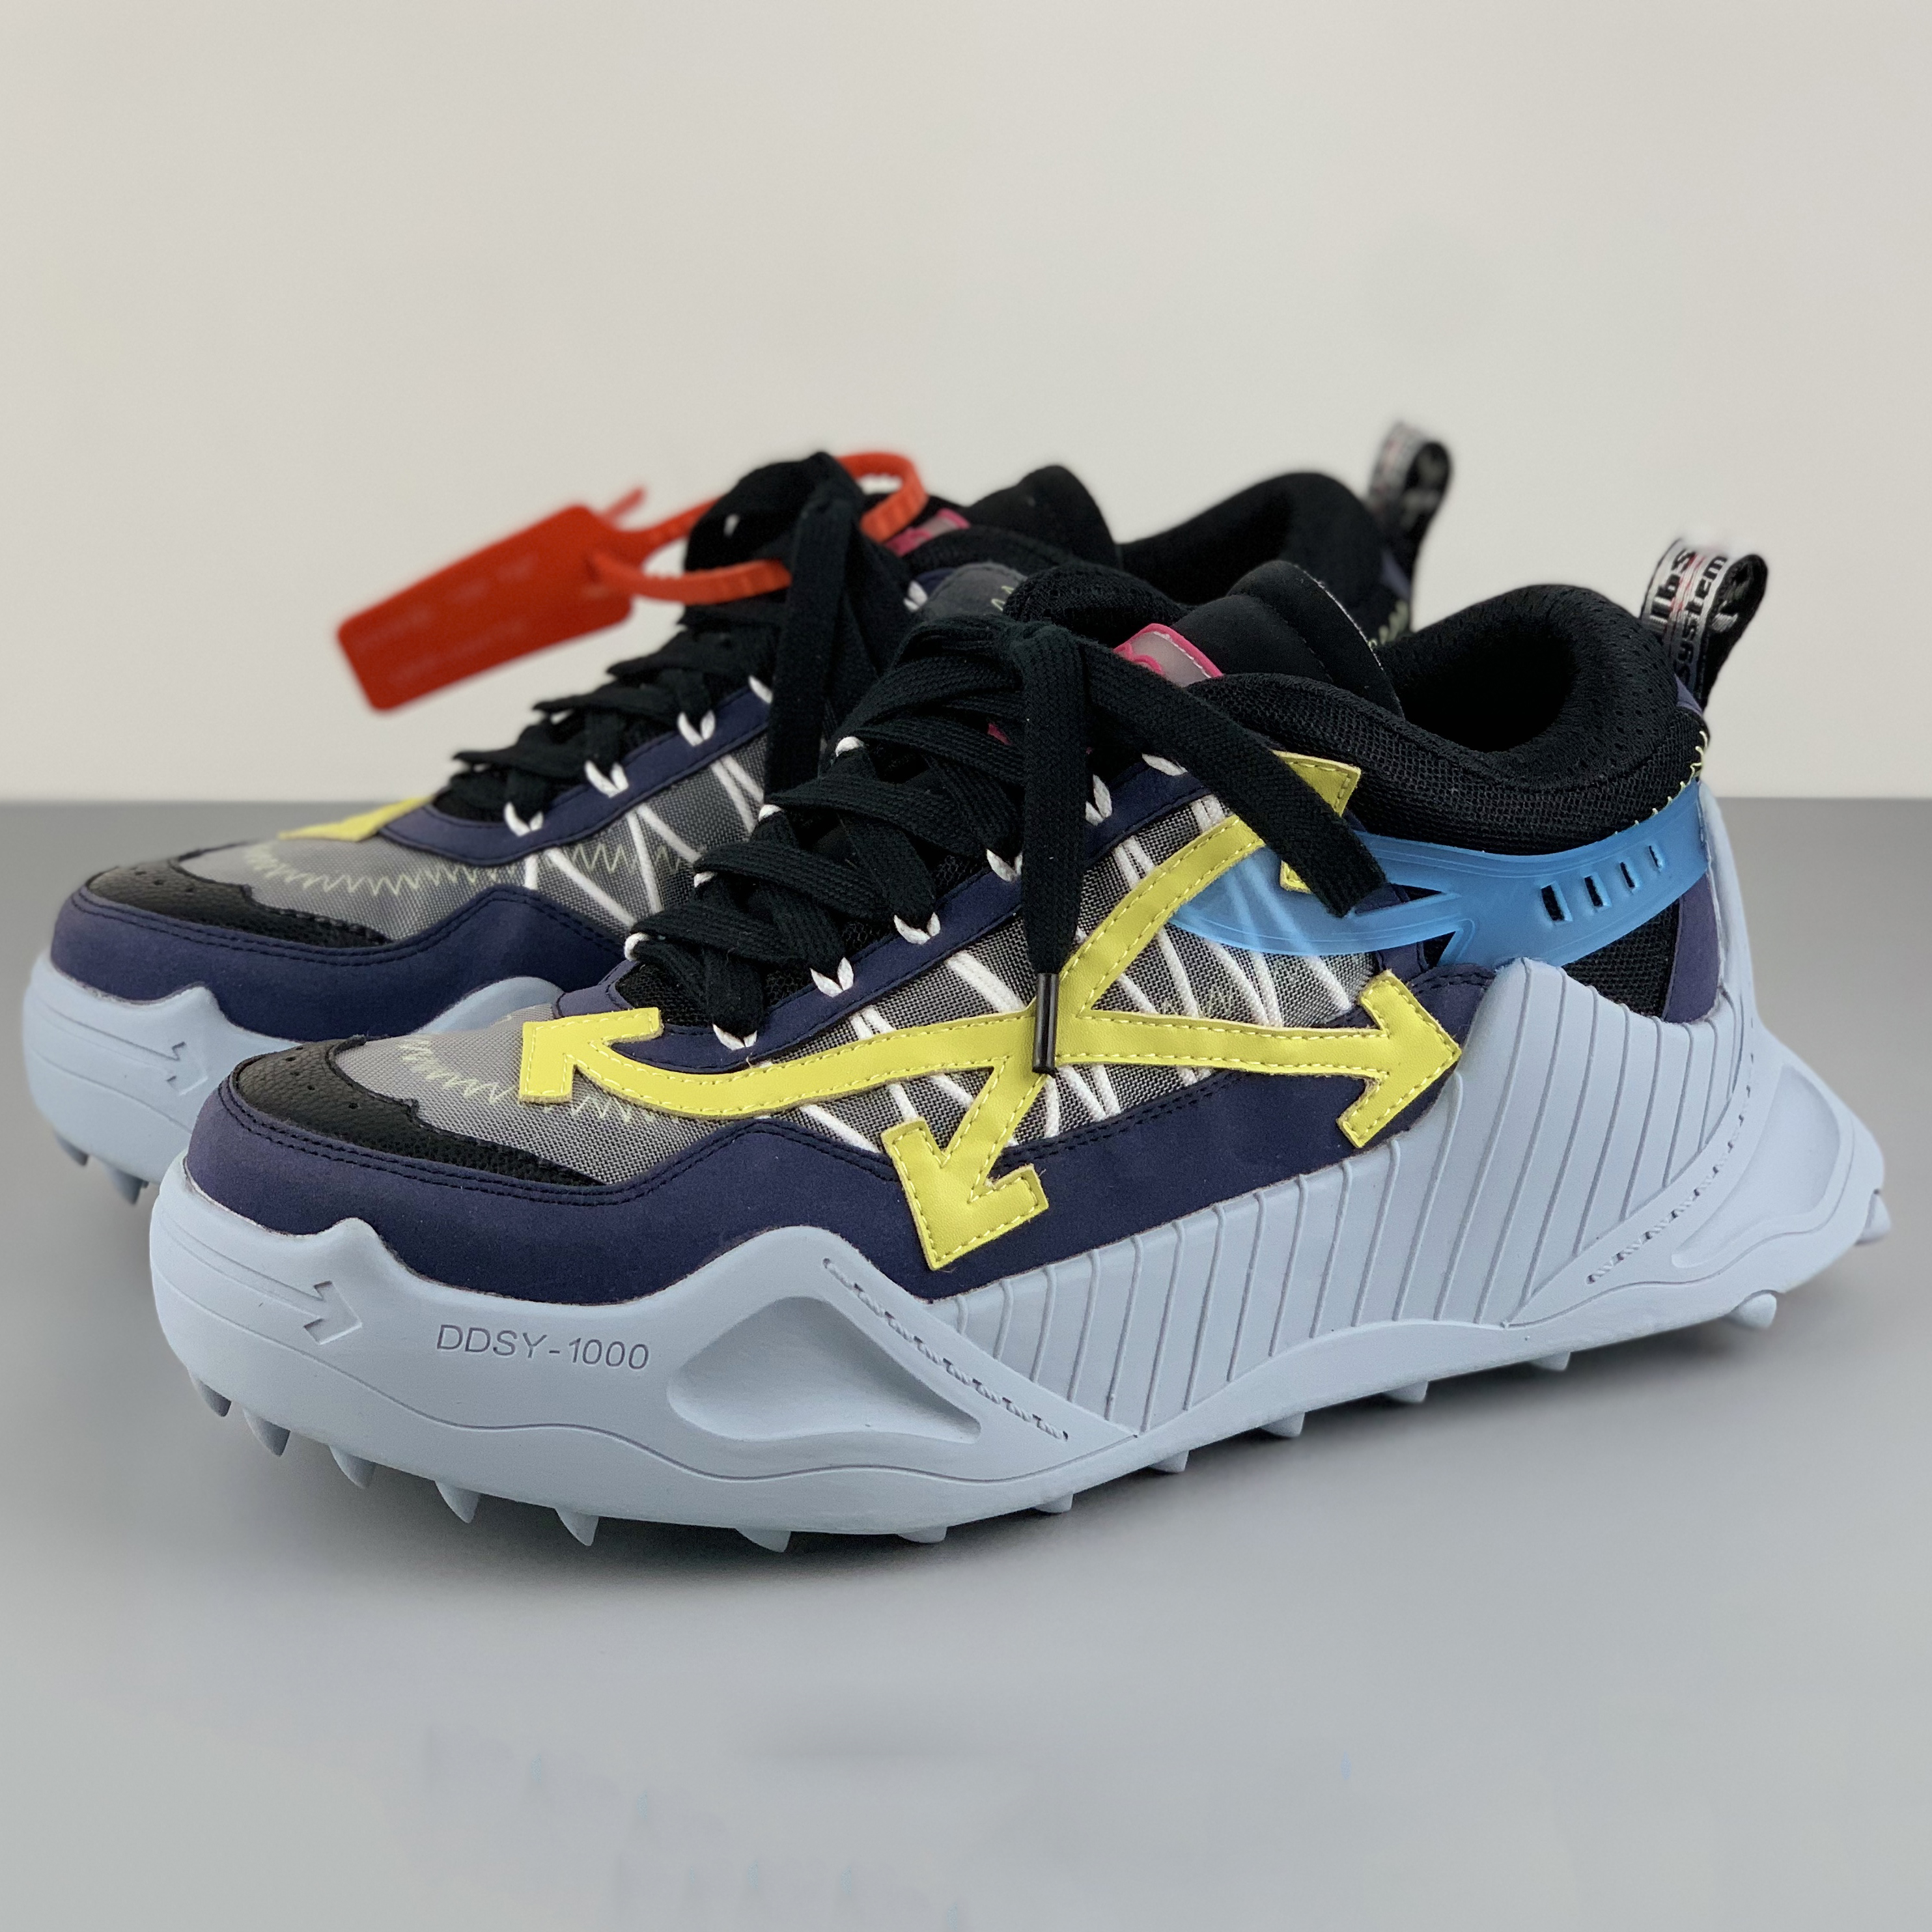 Off-White ODSY-1000 Sneakers  - FashionBeast